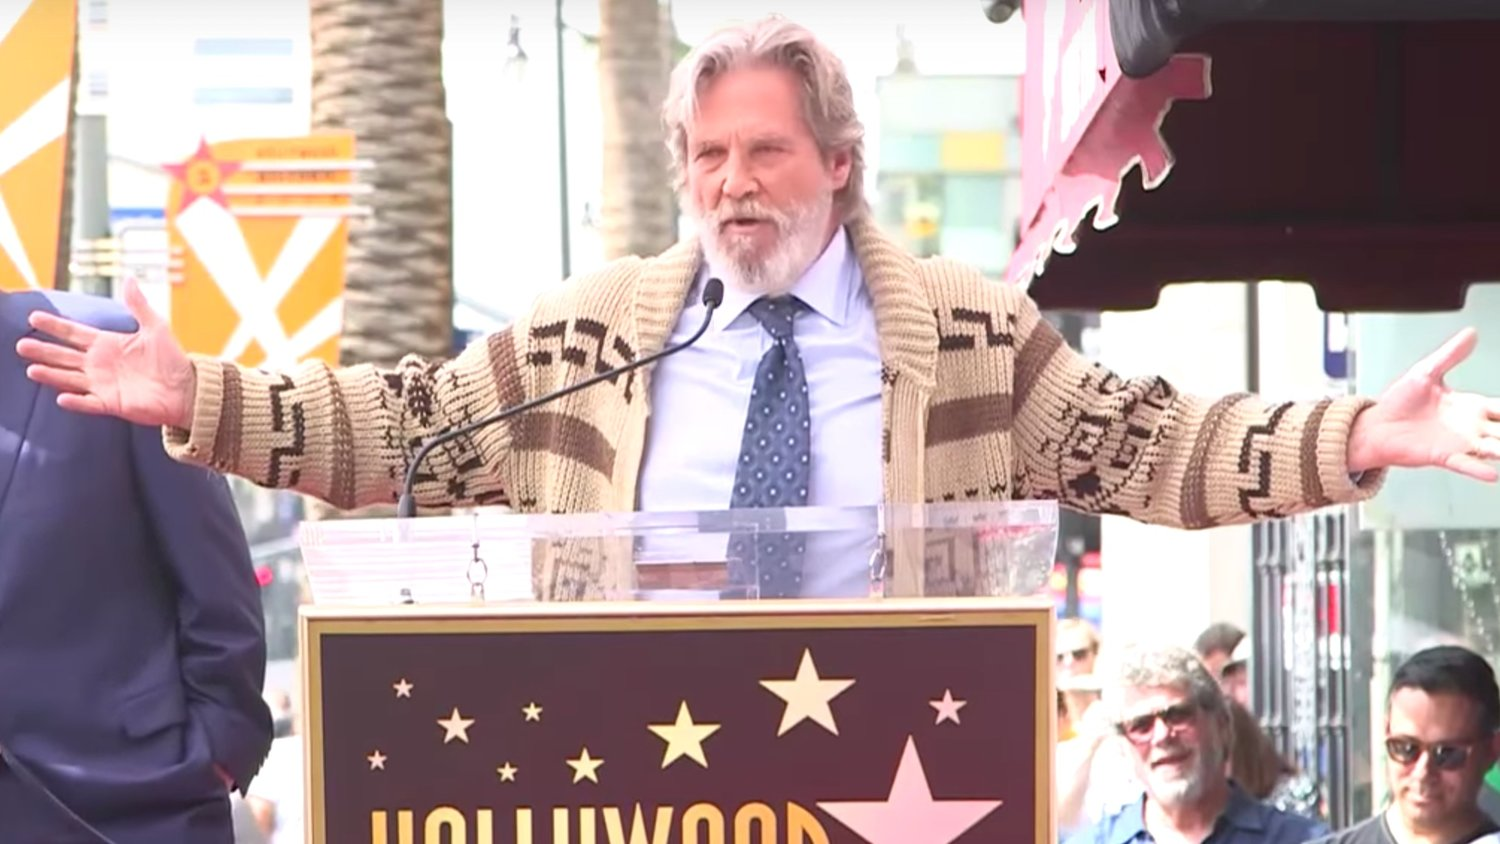 Watch Jeff Bridges Channel The Dude to Honor His BIG LEBOWSKI Co-Star John Goodman